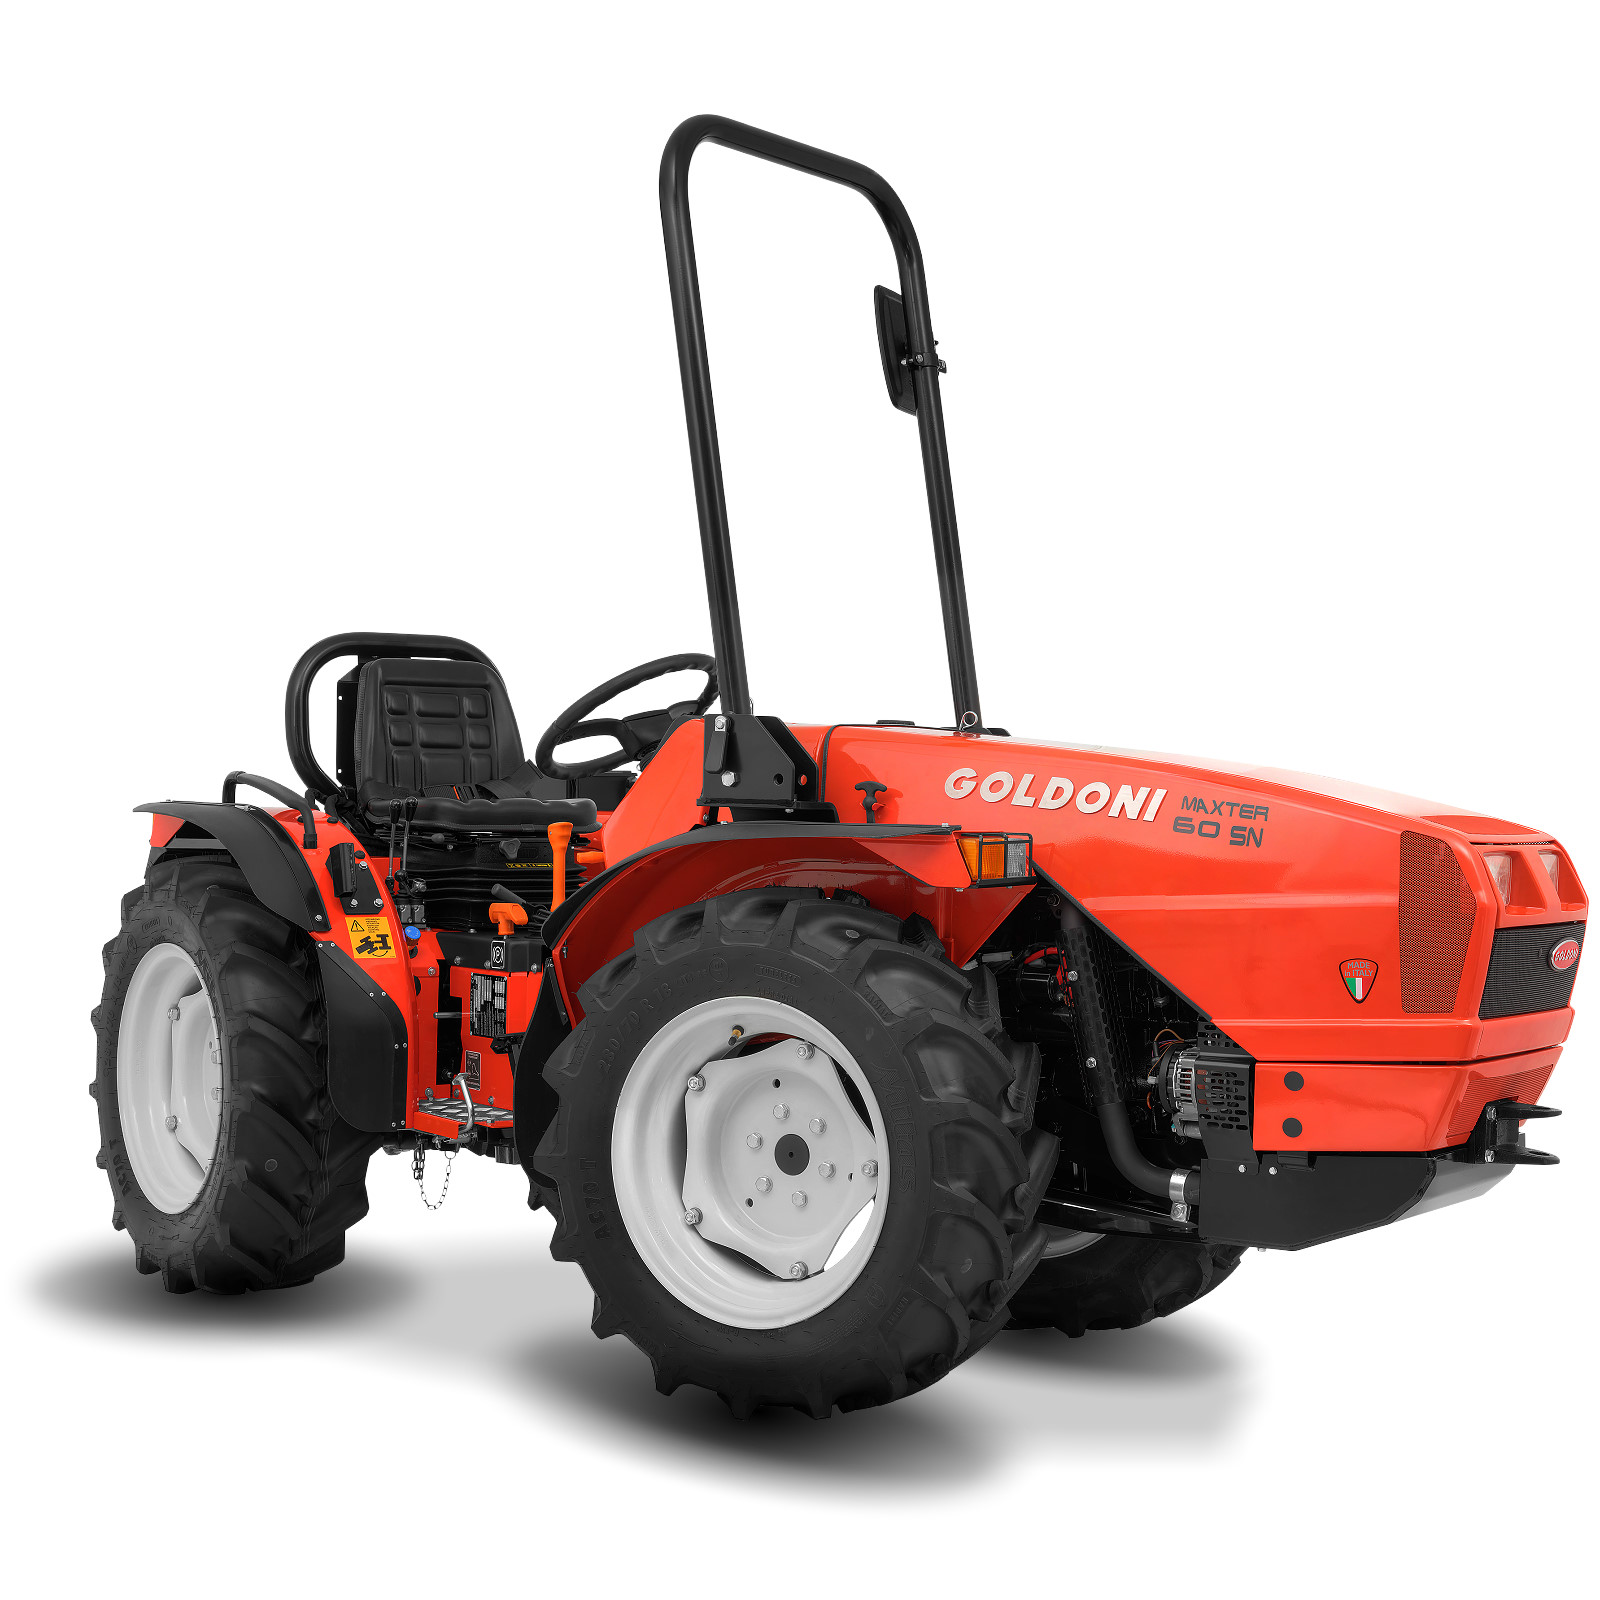 Goldoni Tractor Parts : Goldoni tractor maxter sn tractors